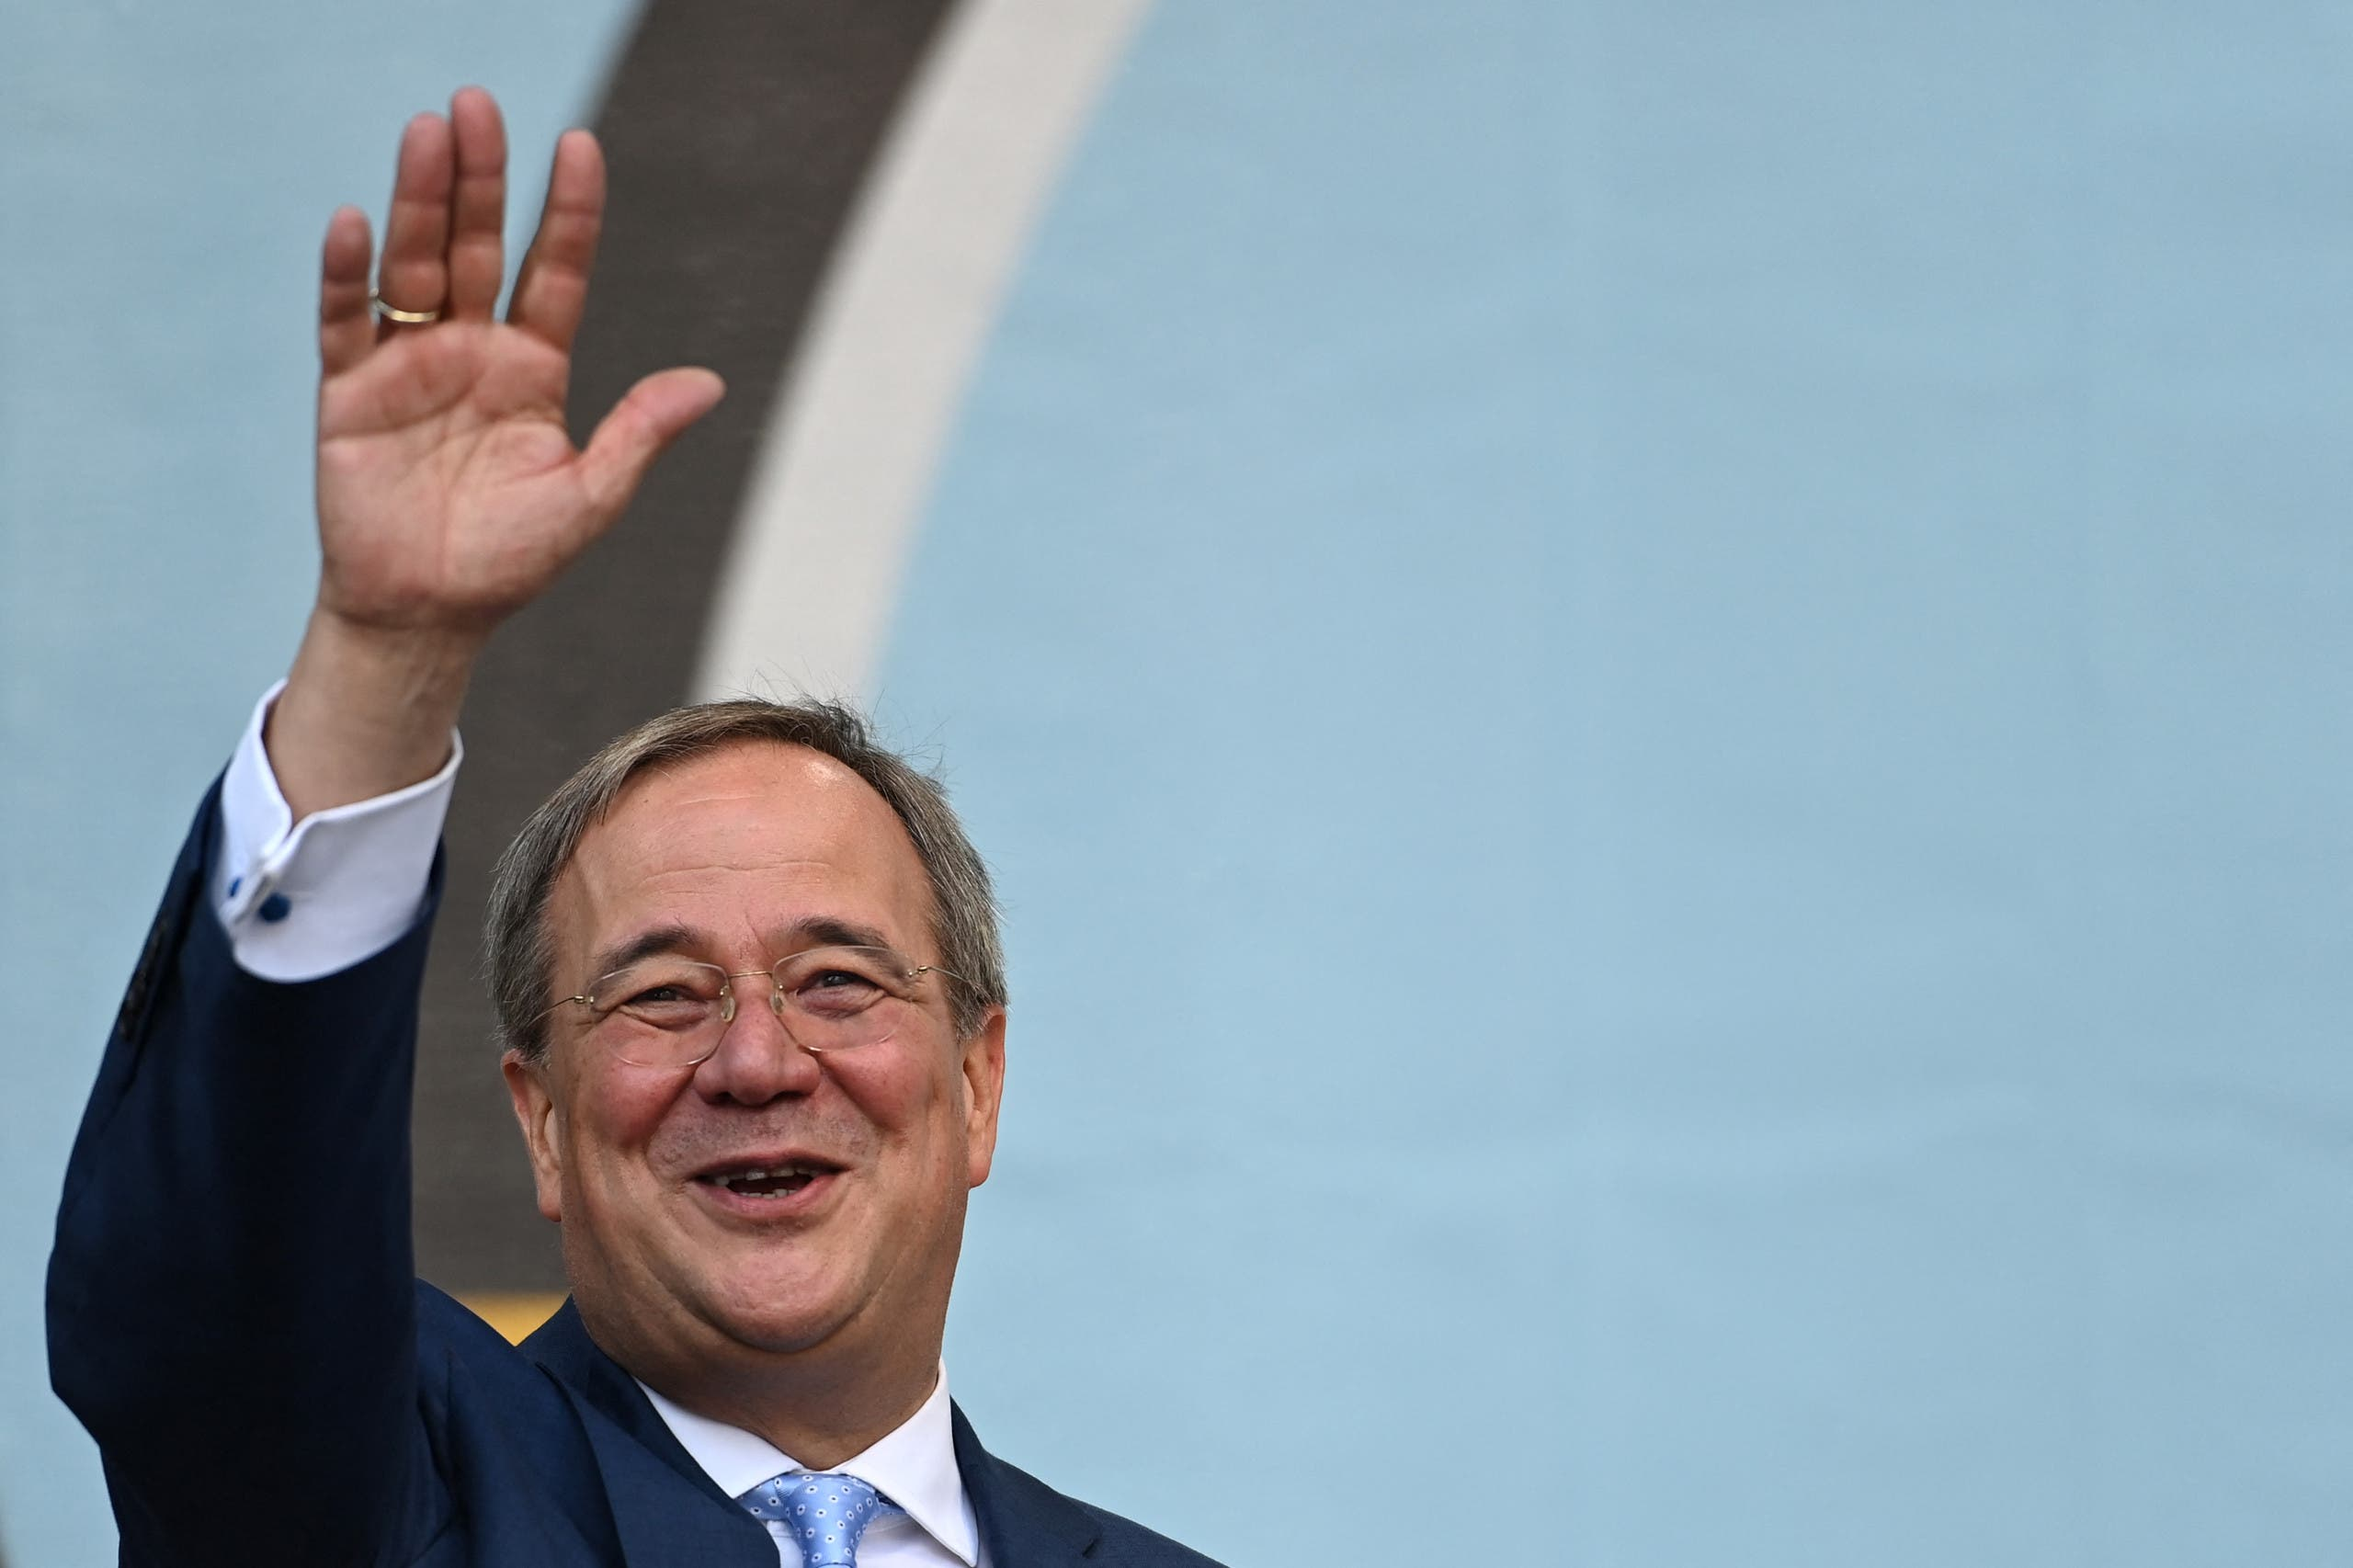 Christian Democratic Union (CDU) leader and chancellor candidate Armin Laschet waves after addressing supporters during an electoral meeting in Warendorf, western Germany, on September 18, 2021. (File photo: AFP)